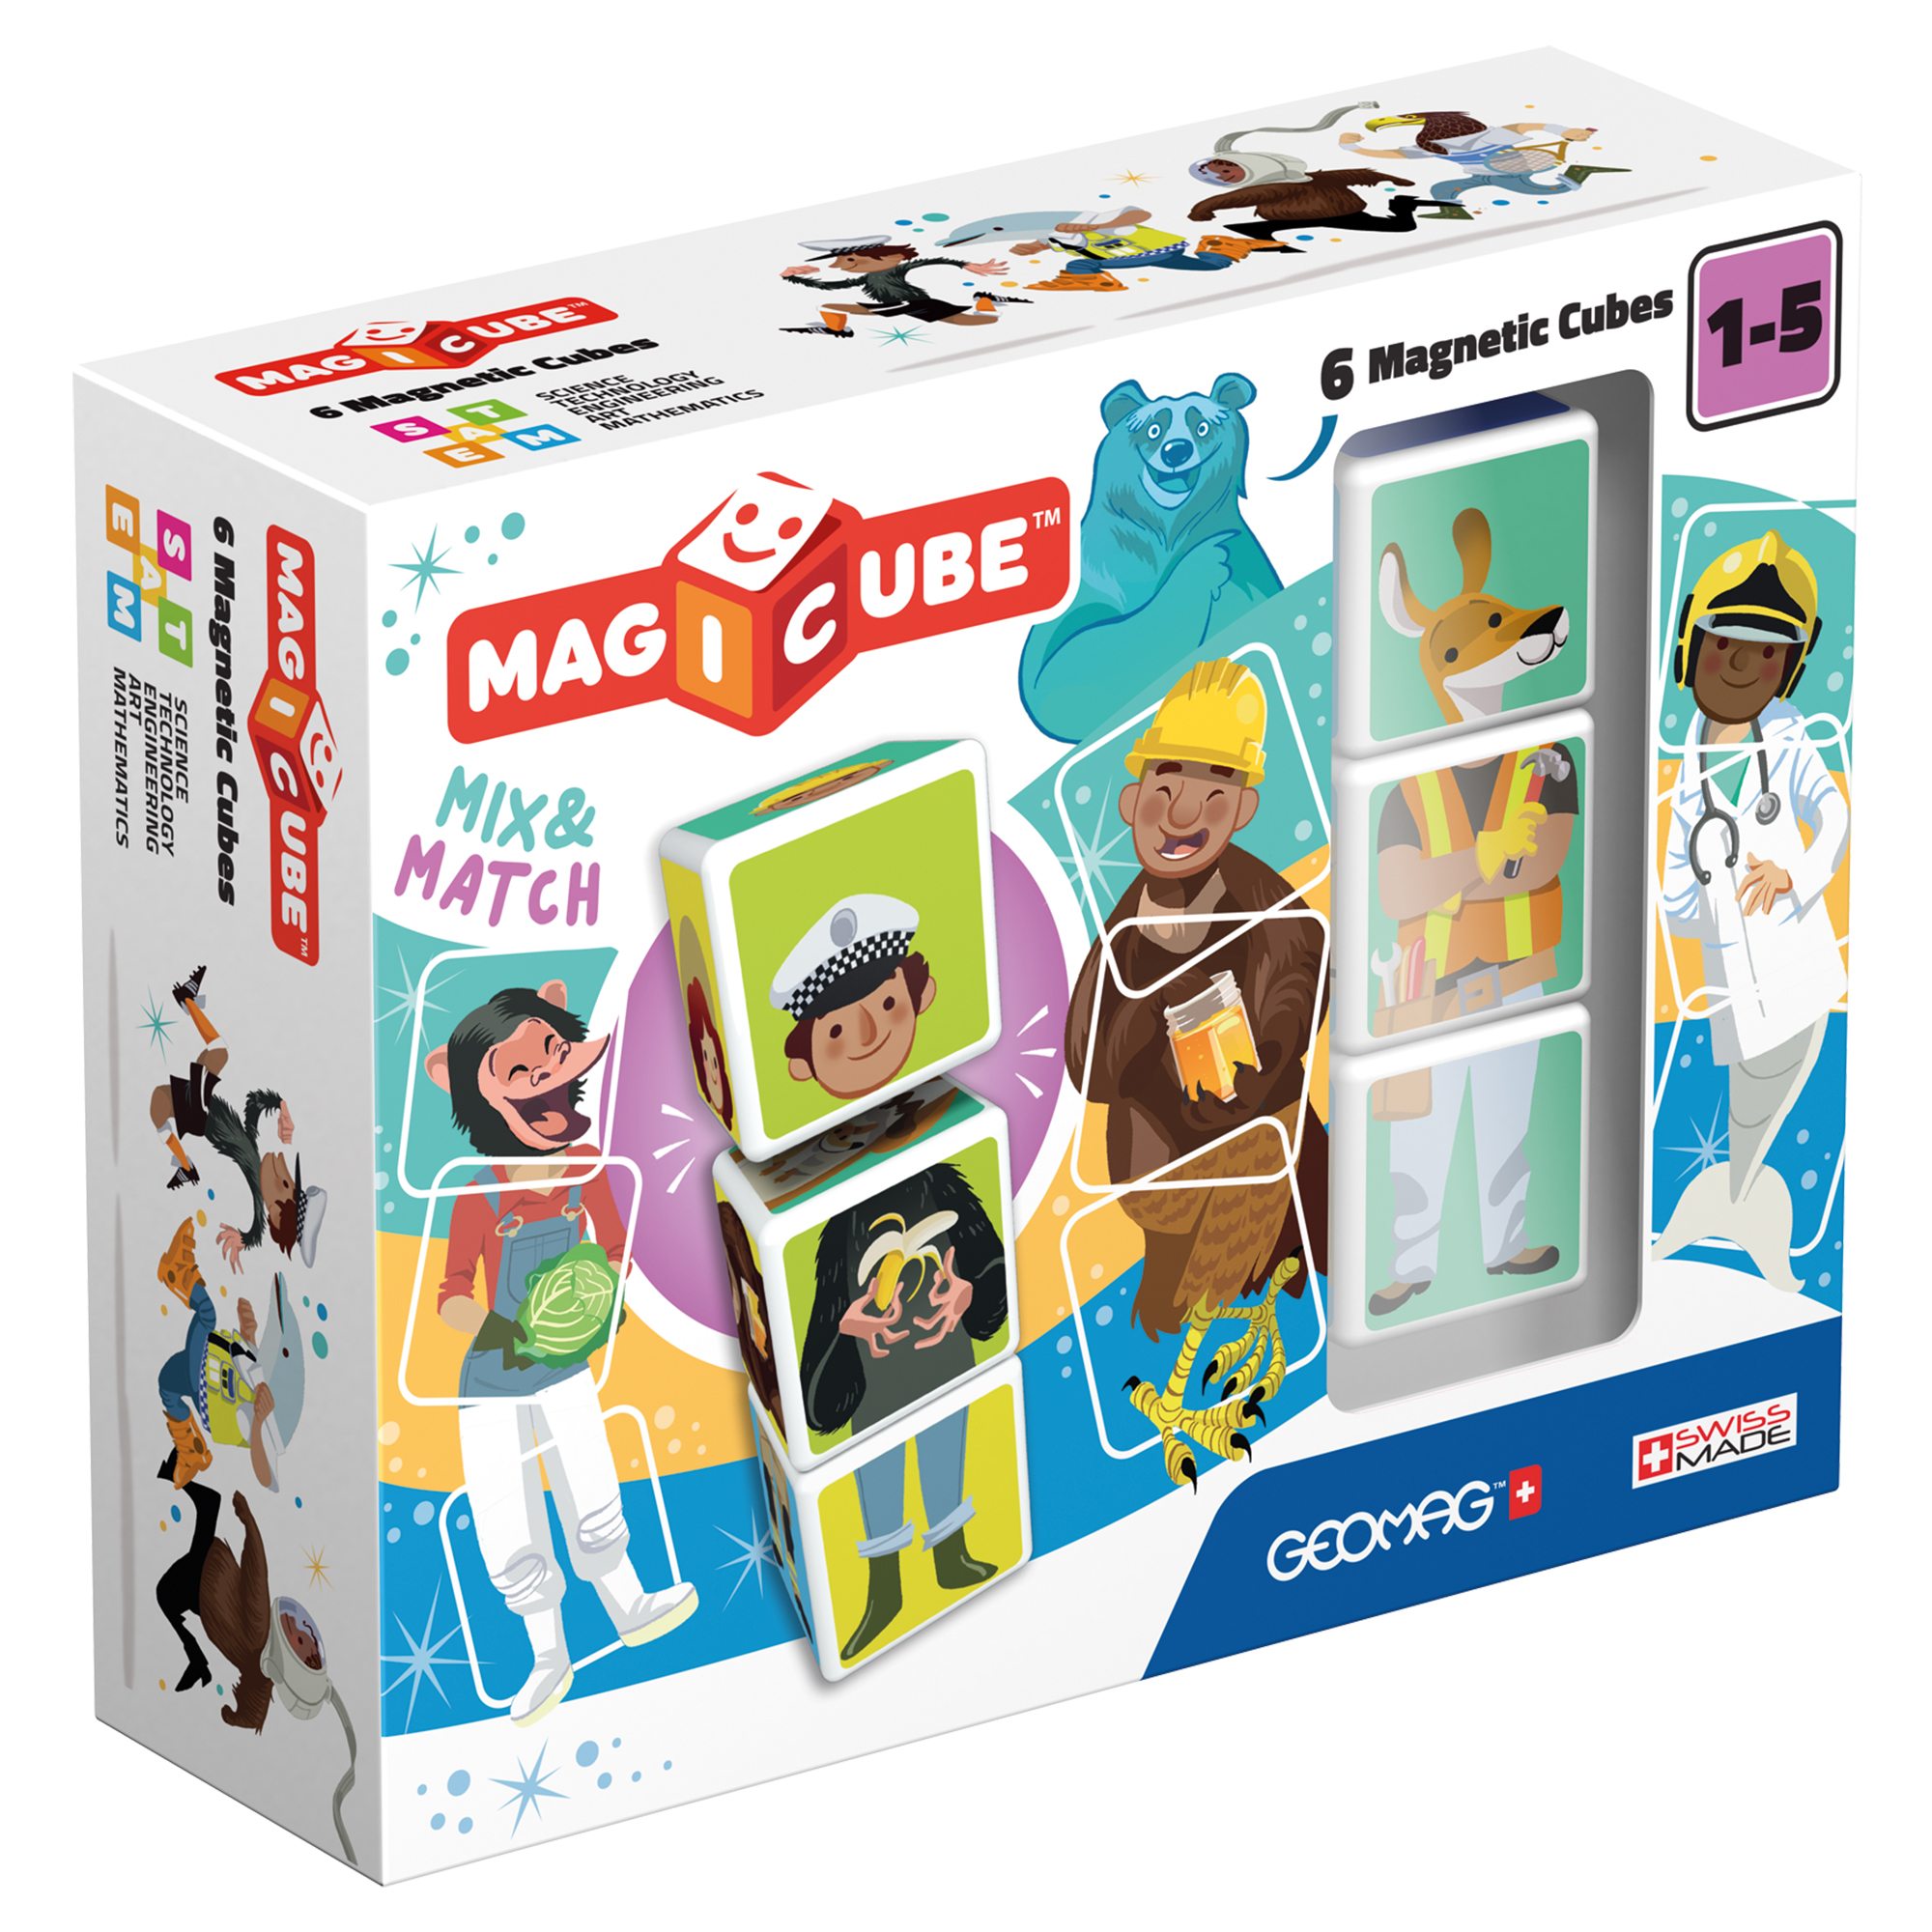 Geoamg-Magicube-Mix-and-Match-6_1.jpg